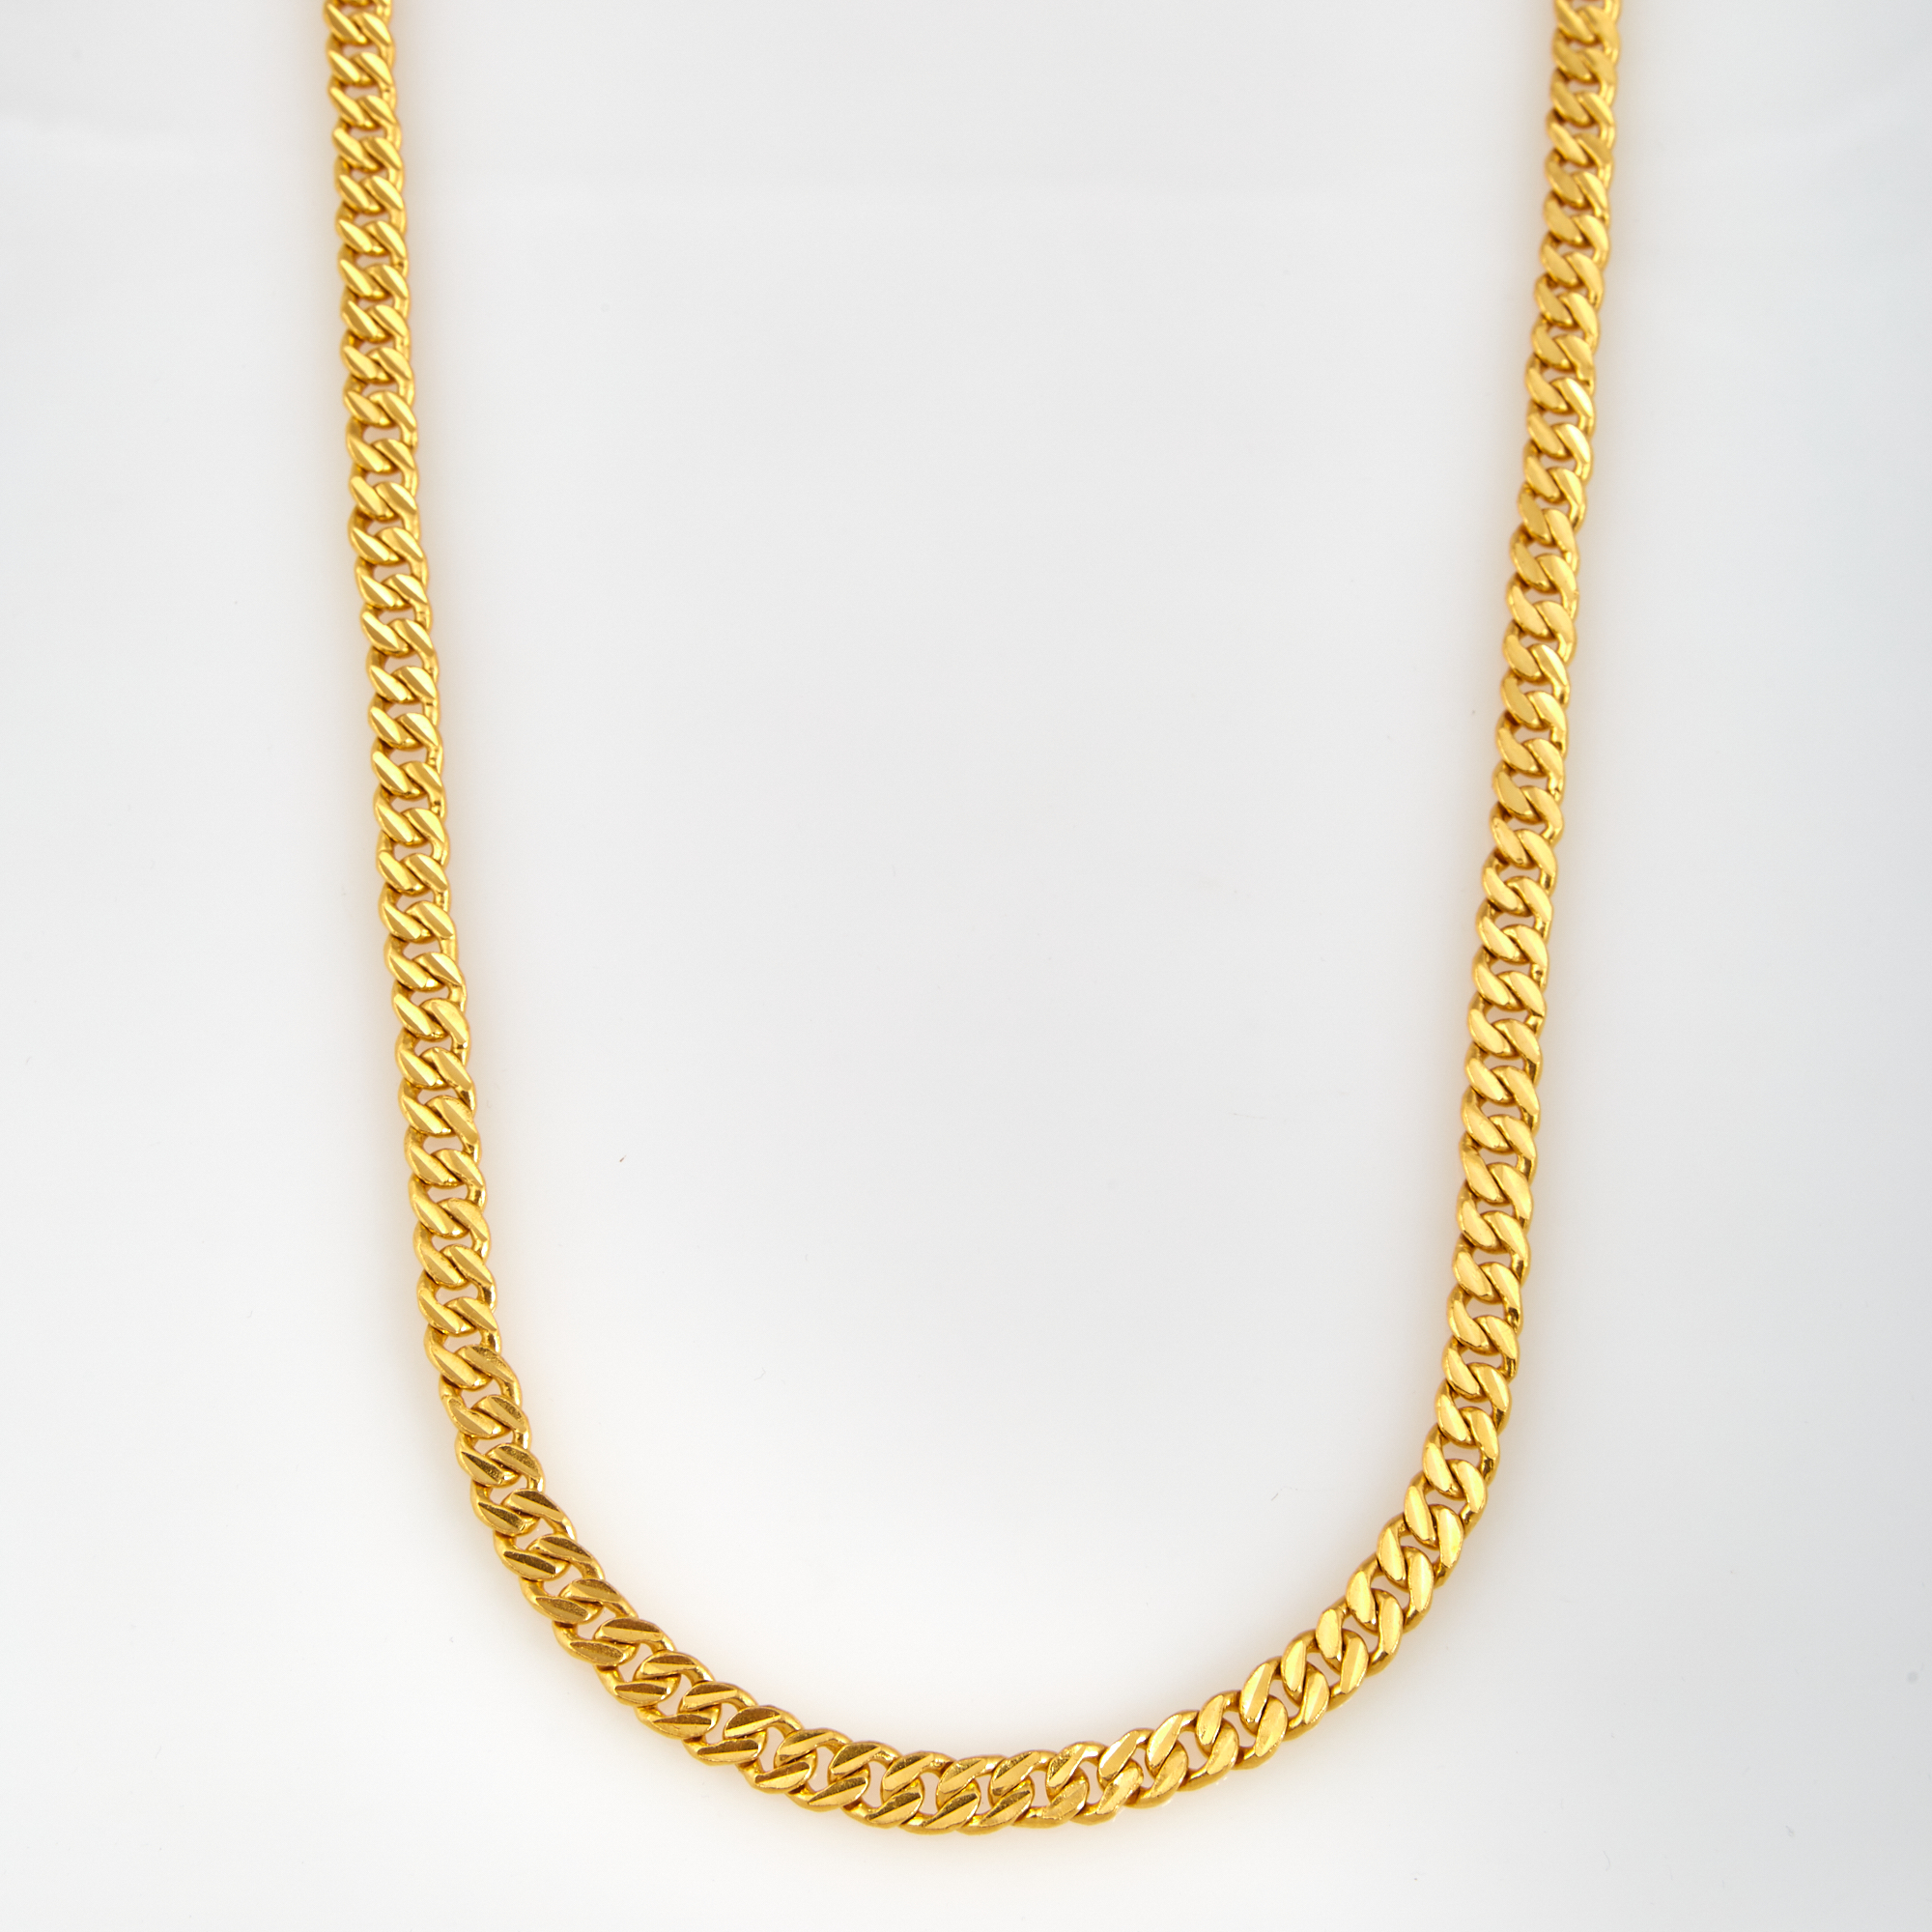 Lot image - Gold Neck Chain, 24K 73 dwt.